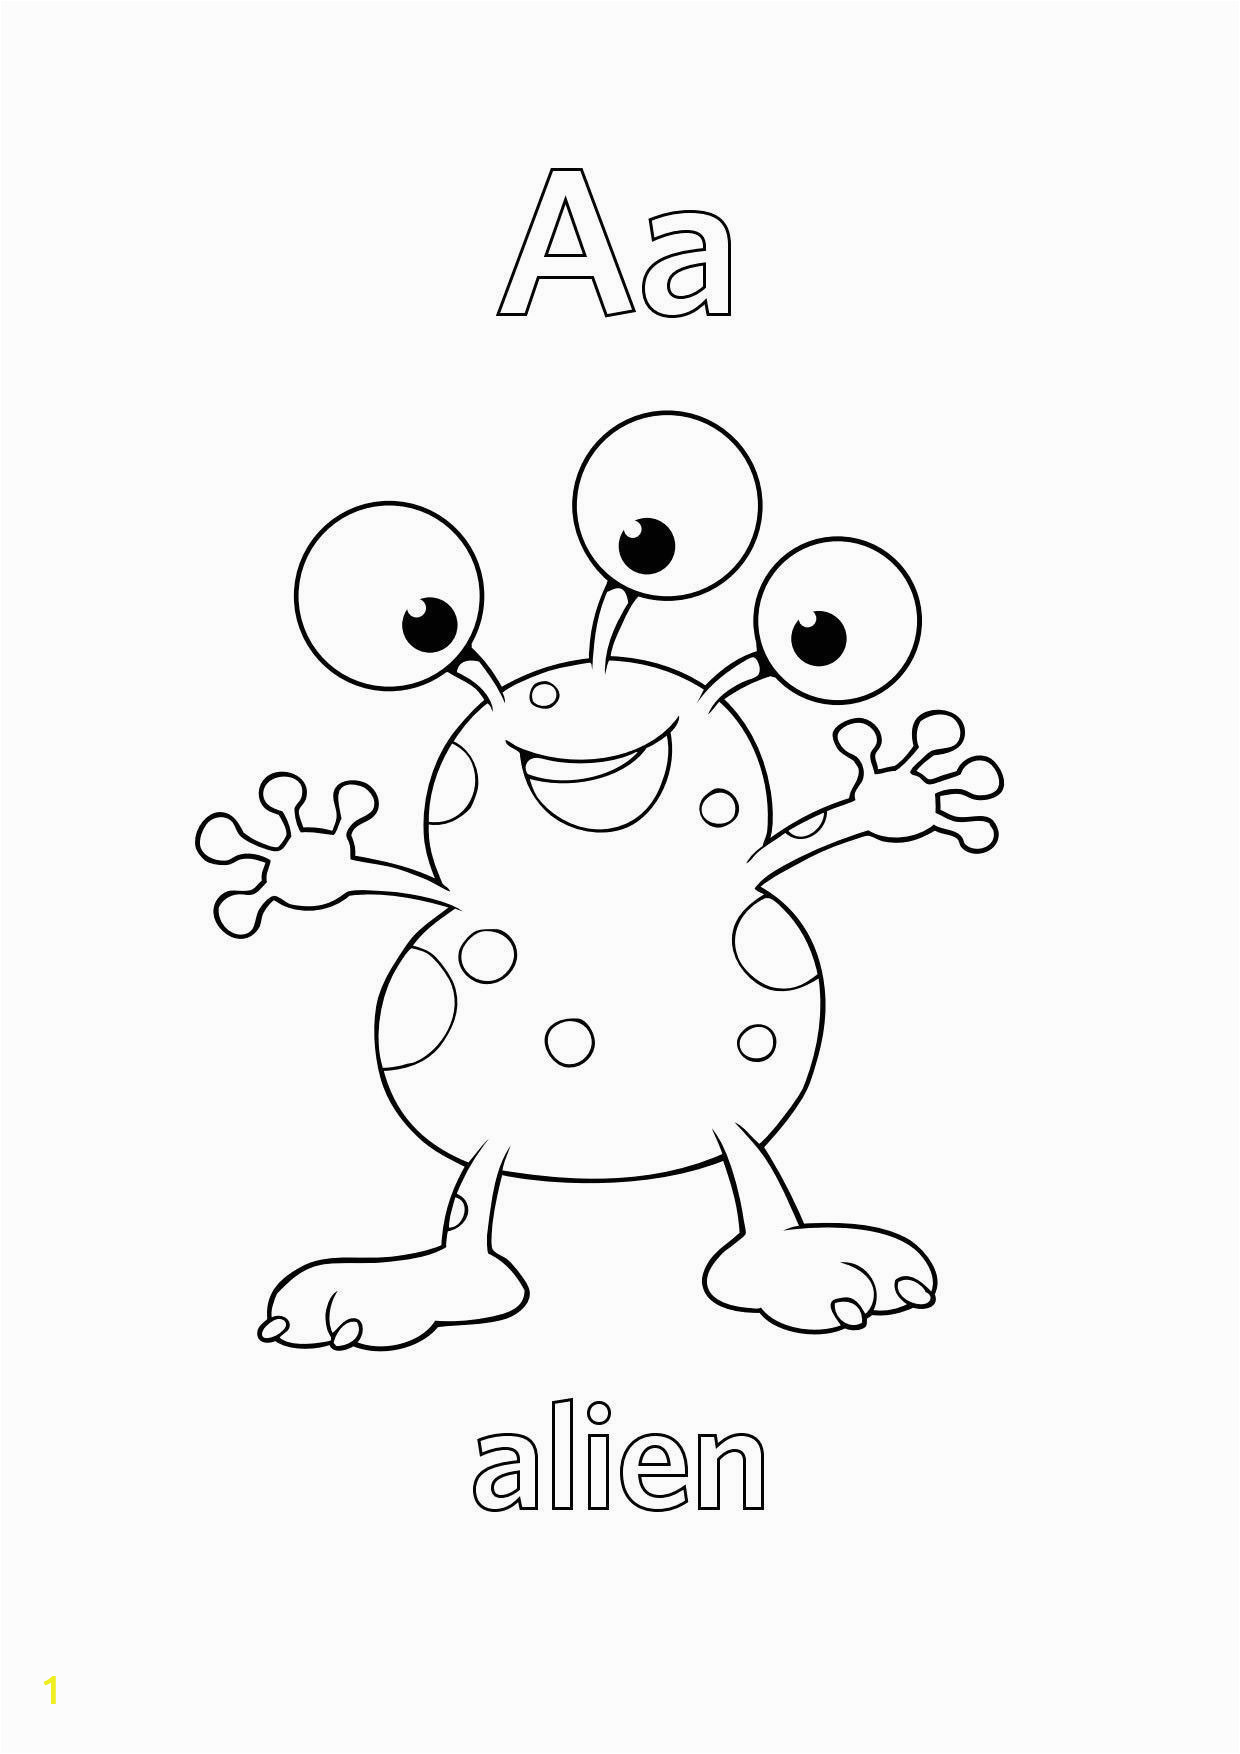 Alphabet Coloring Worksheets for 3 Year Olds Coloring Pages Printable Coloring Pages for 3 Year Olds